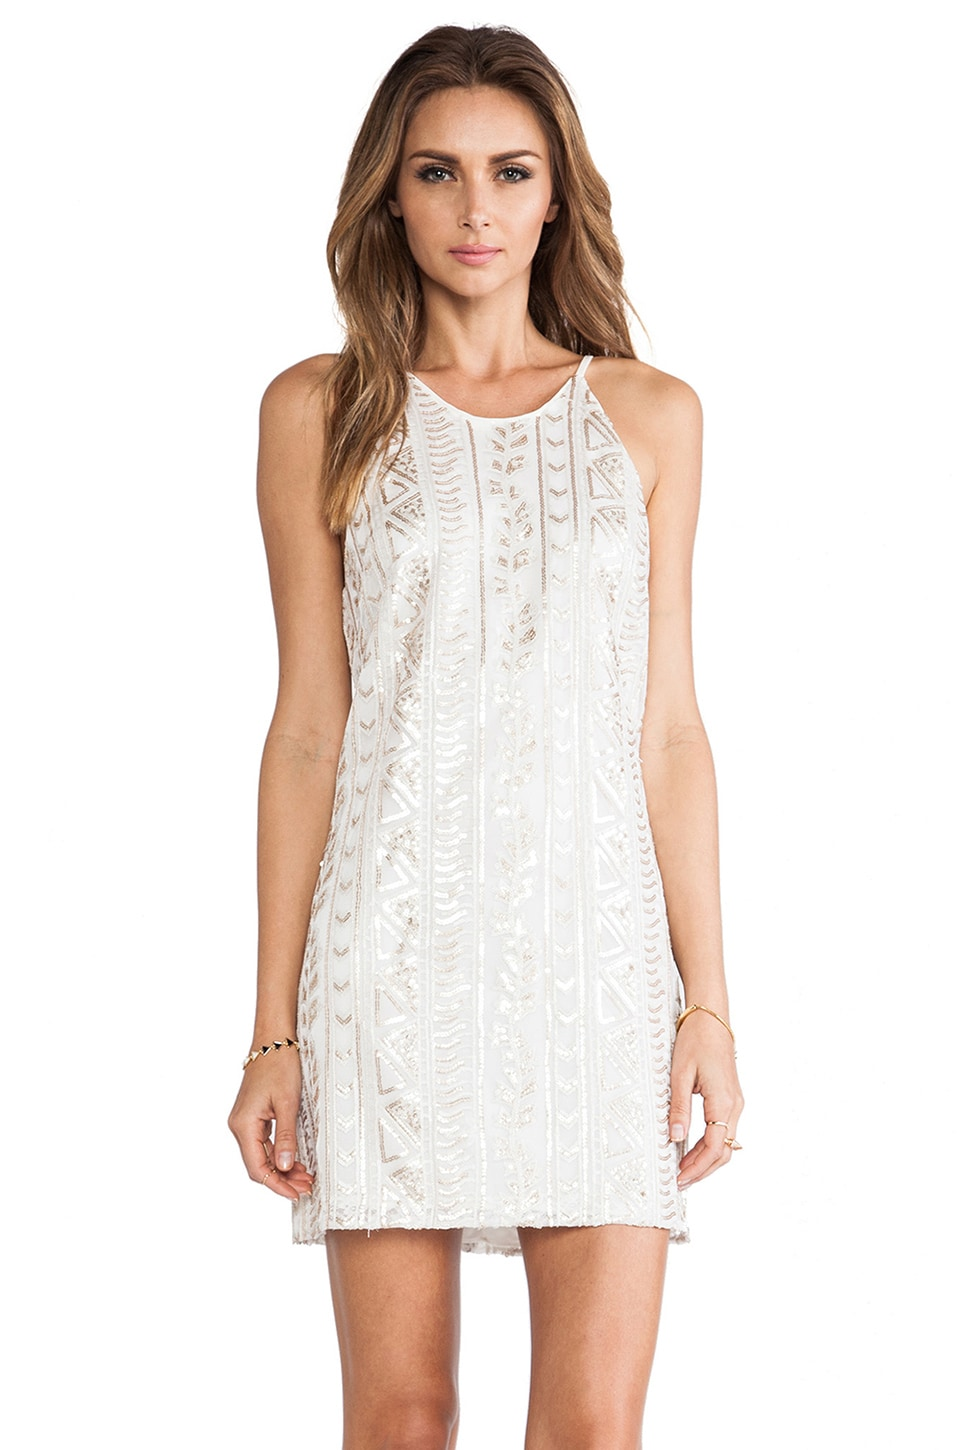 DRESS THE POPULATION Jamie Sequin Tank Dress in White &amp Gold  REVOLVE